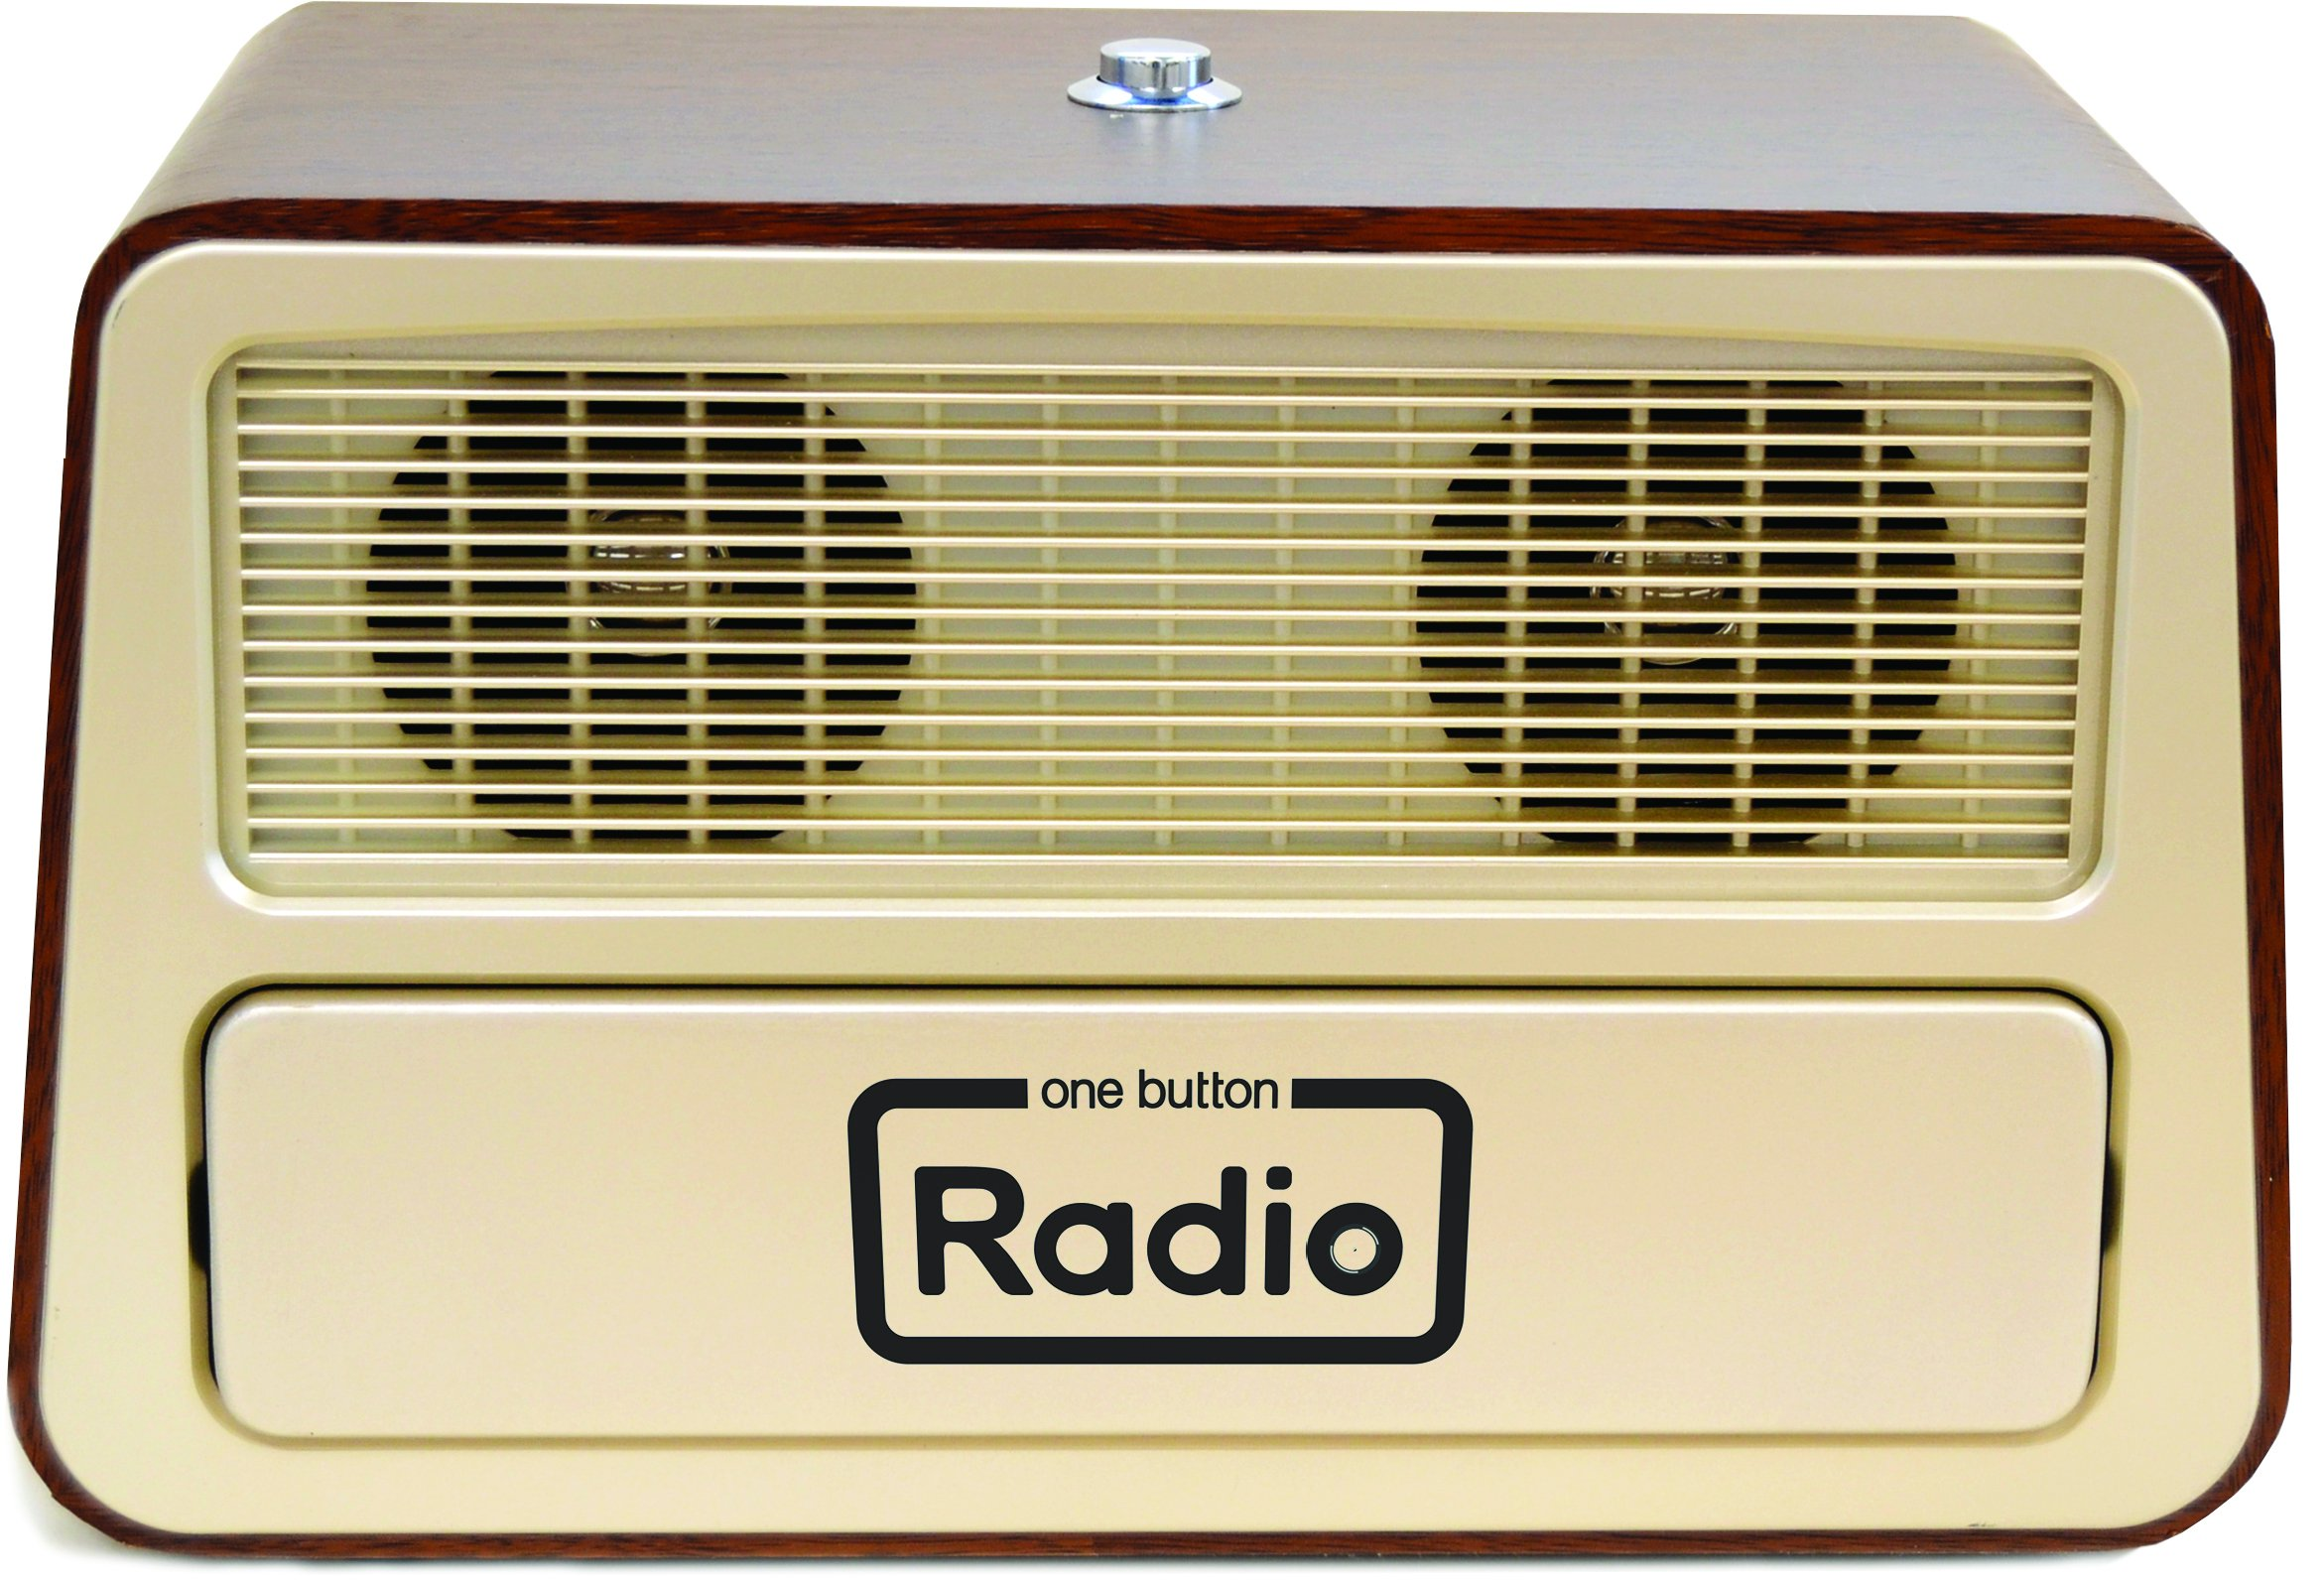 Memory Loss One Button Radio / Large Retro Style Radio 11.75''w x 7.25''h x 6.25''d by GeriGuard Solutions